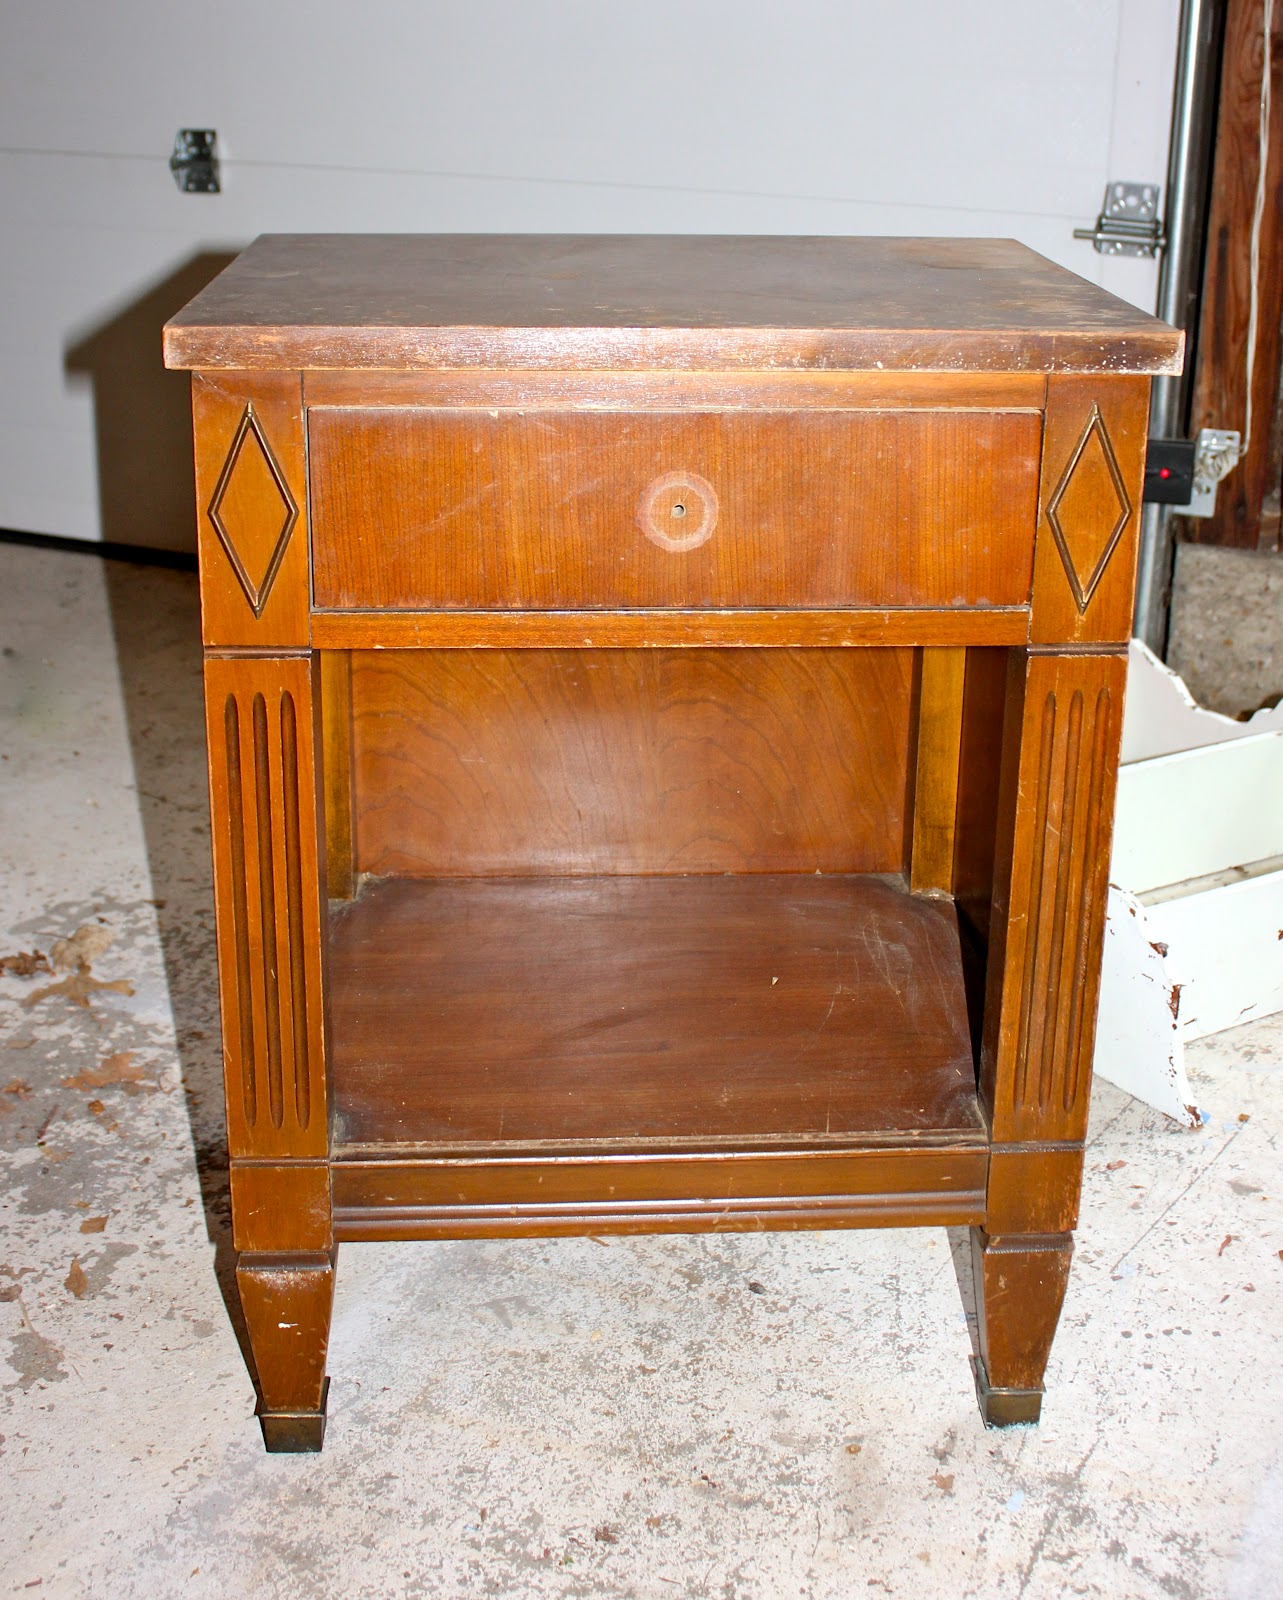 Sell My Antique Furniture - Sell My Antique Furniture Antique Furniture